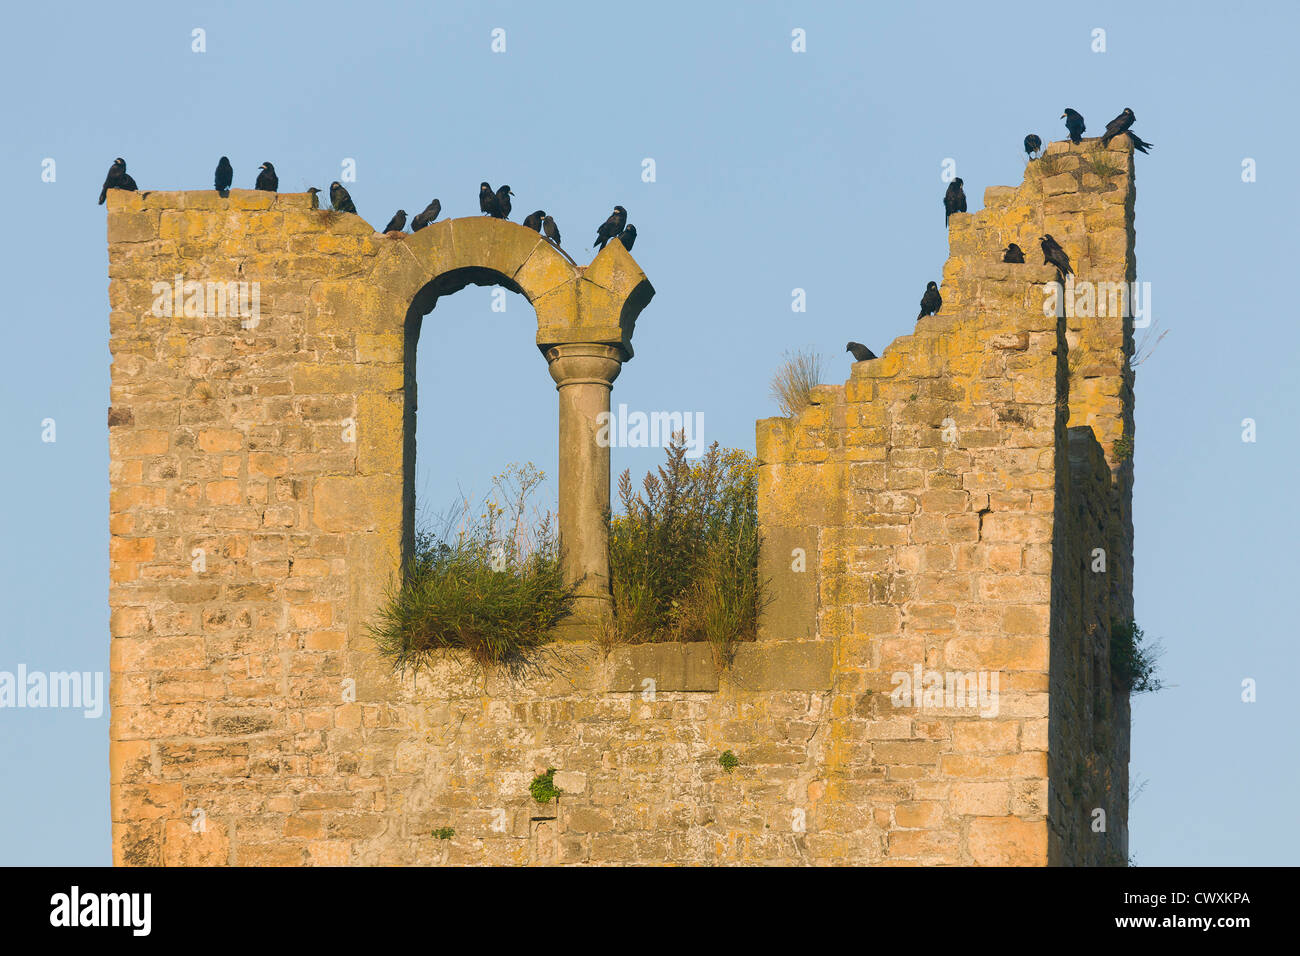 Rooks on the Huelen Zand (Hollow Tooth) tower on Bock rock. - Stock Image